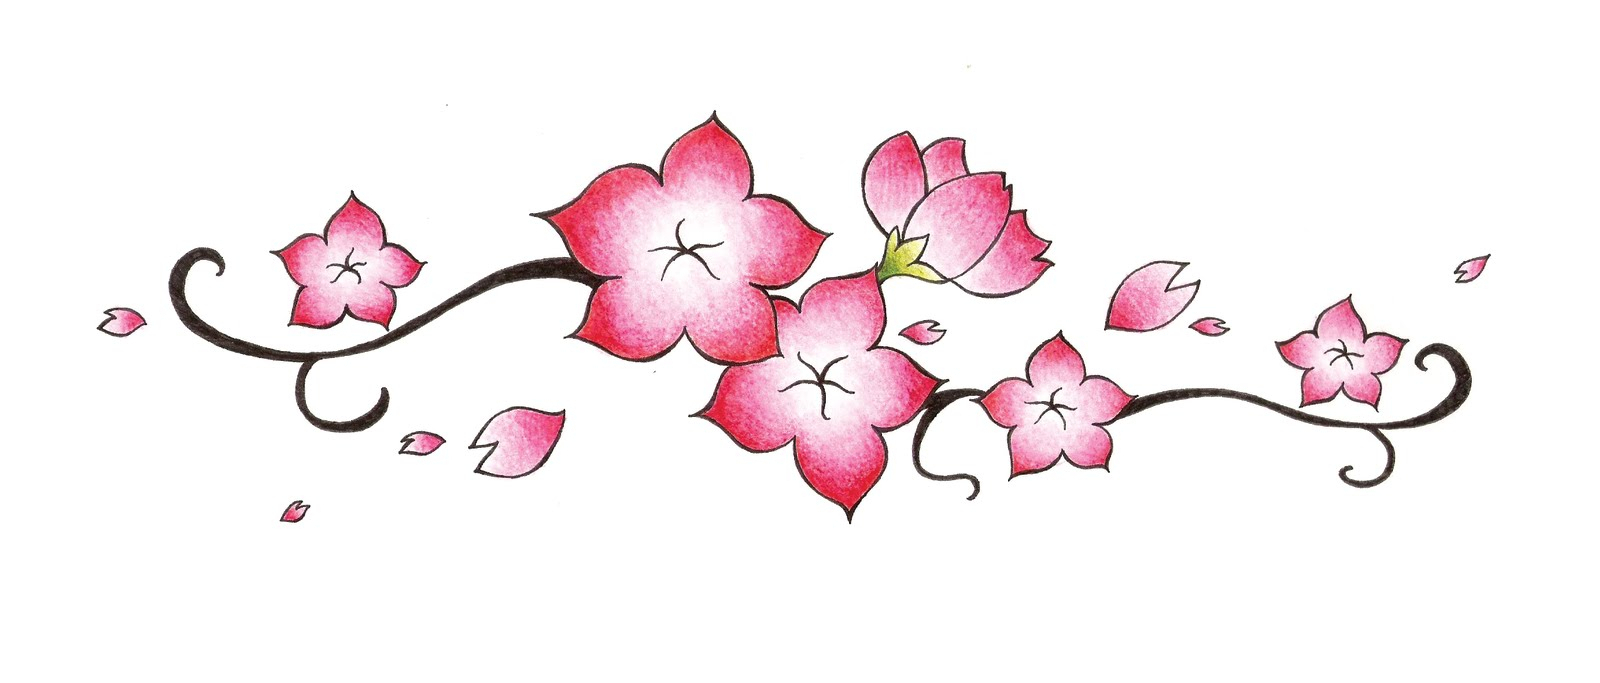 cherry blossoms drawing at getdrawings com free for personal use